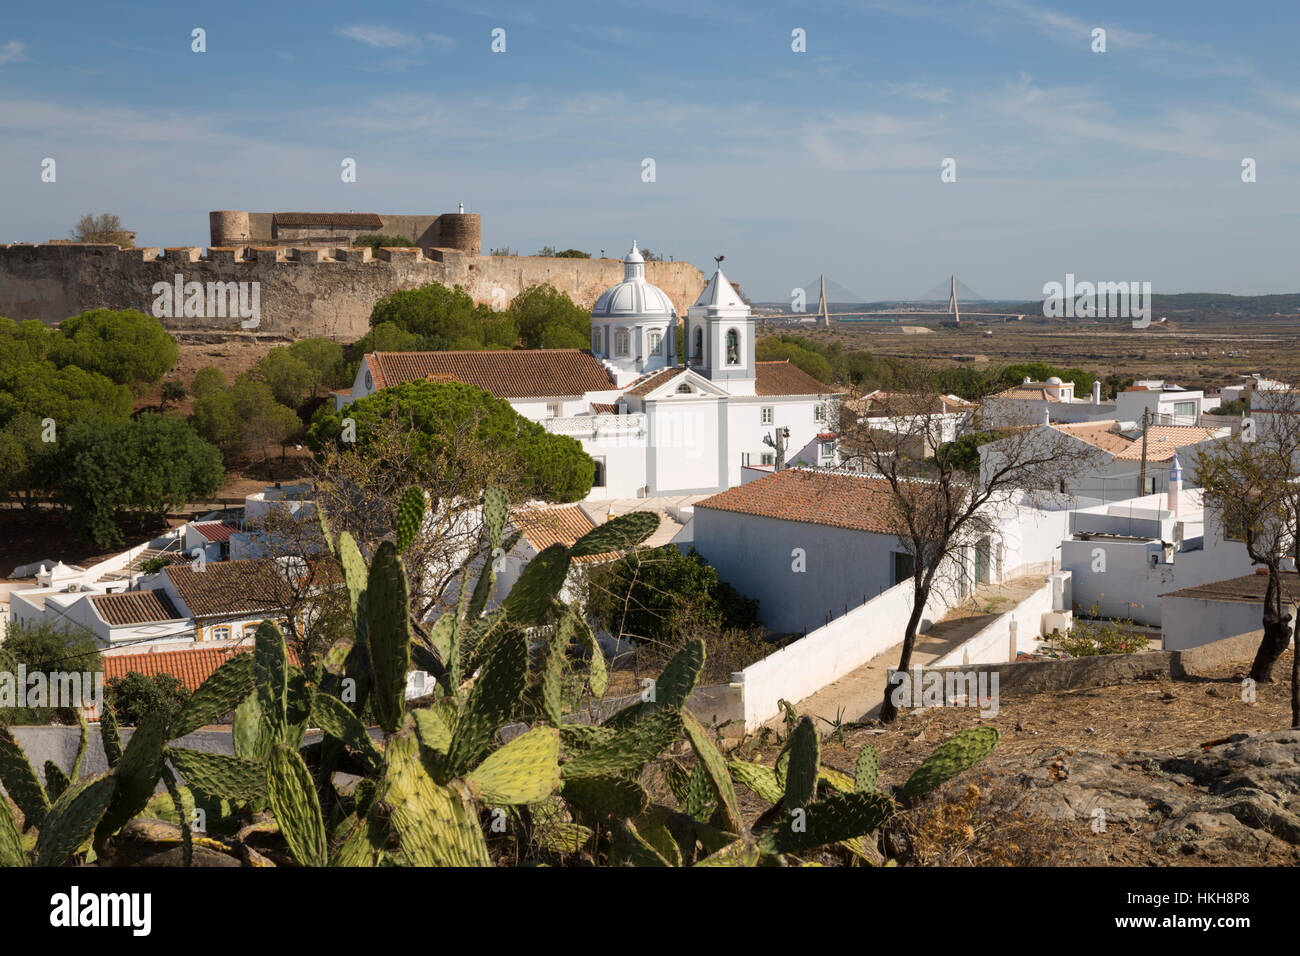 View over white town and 13th century castle, Castro Marim, Algarve, Portugal, Europe - Stock Image